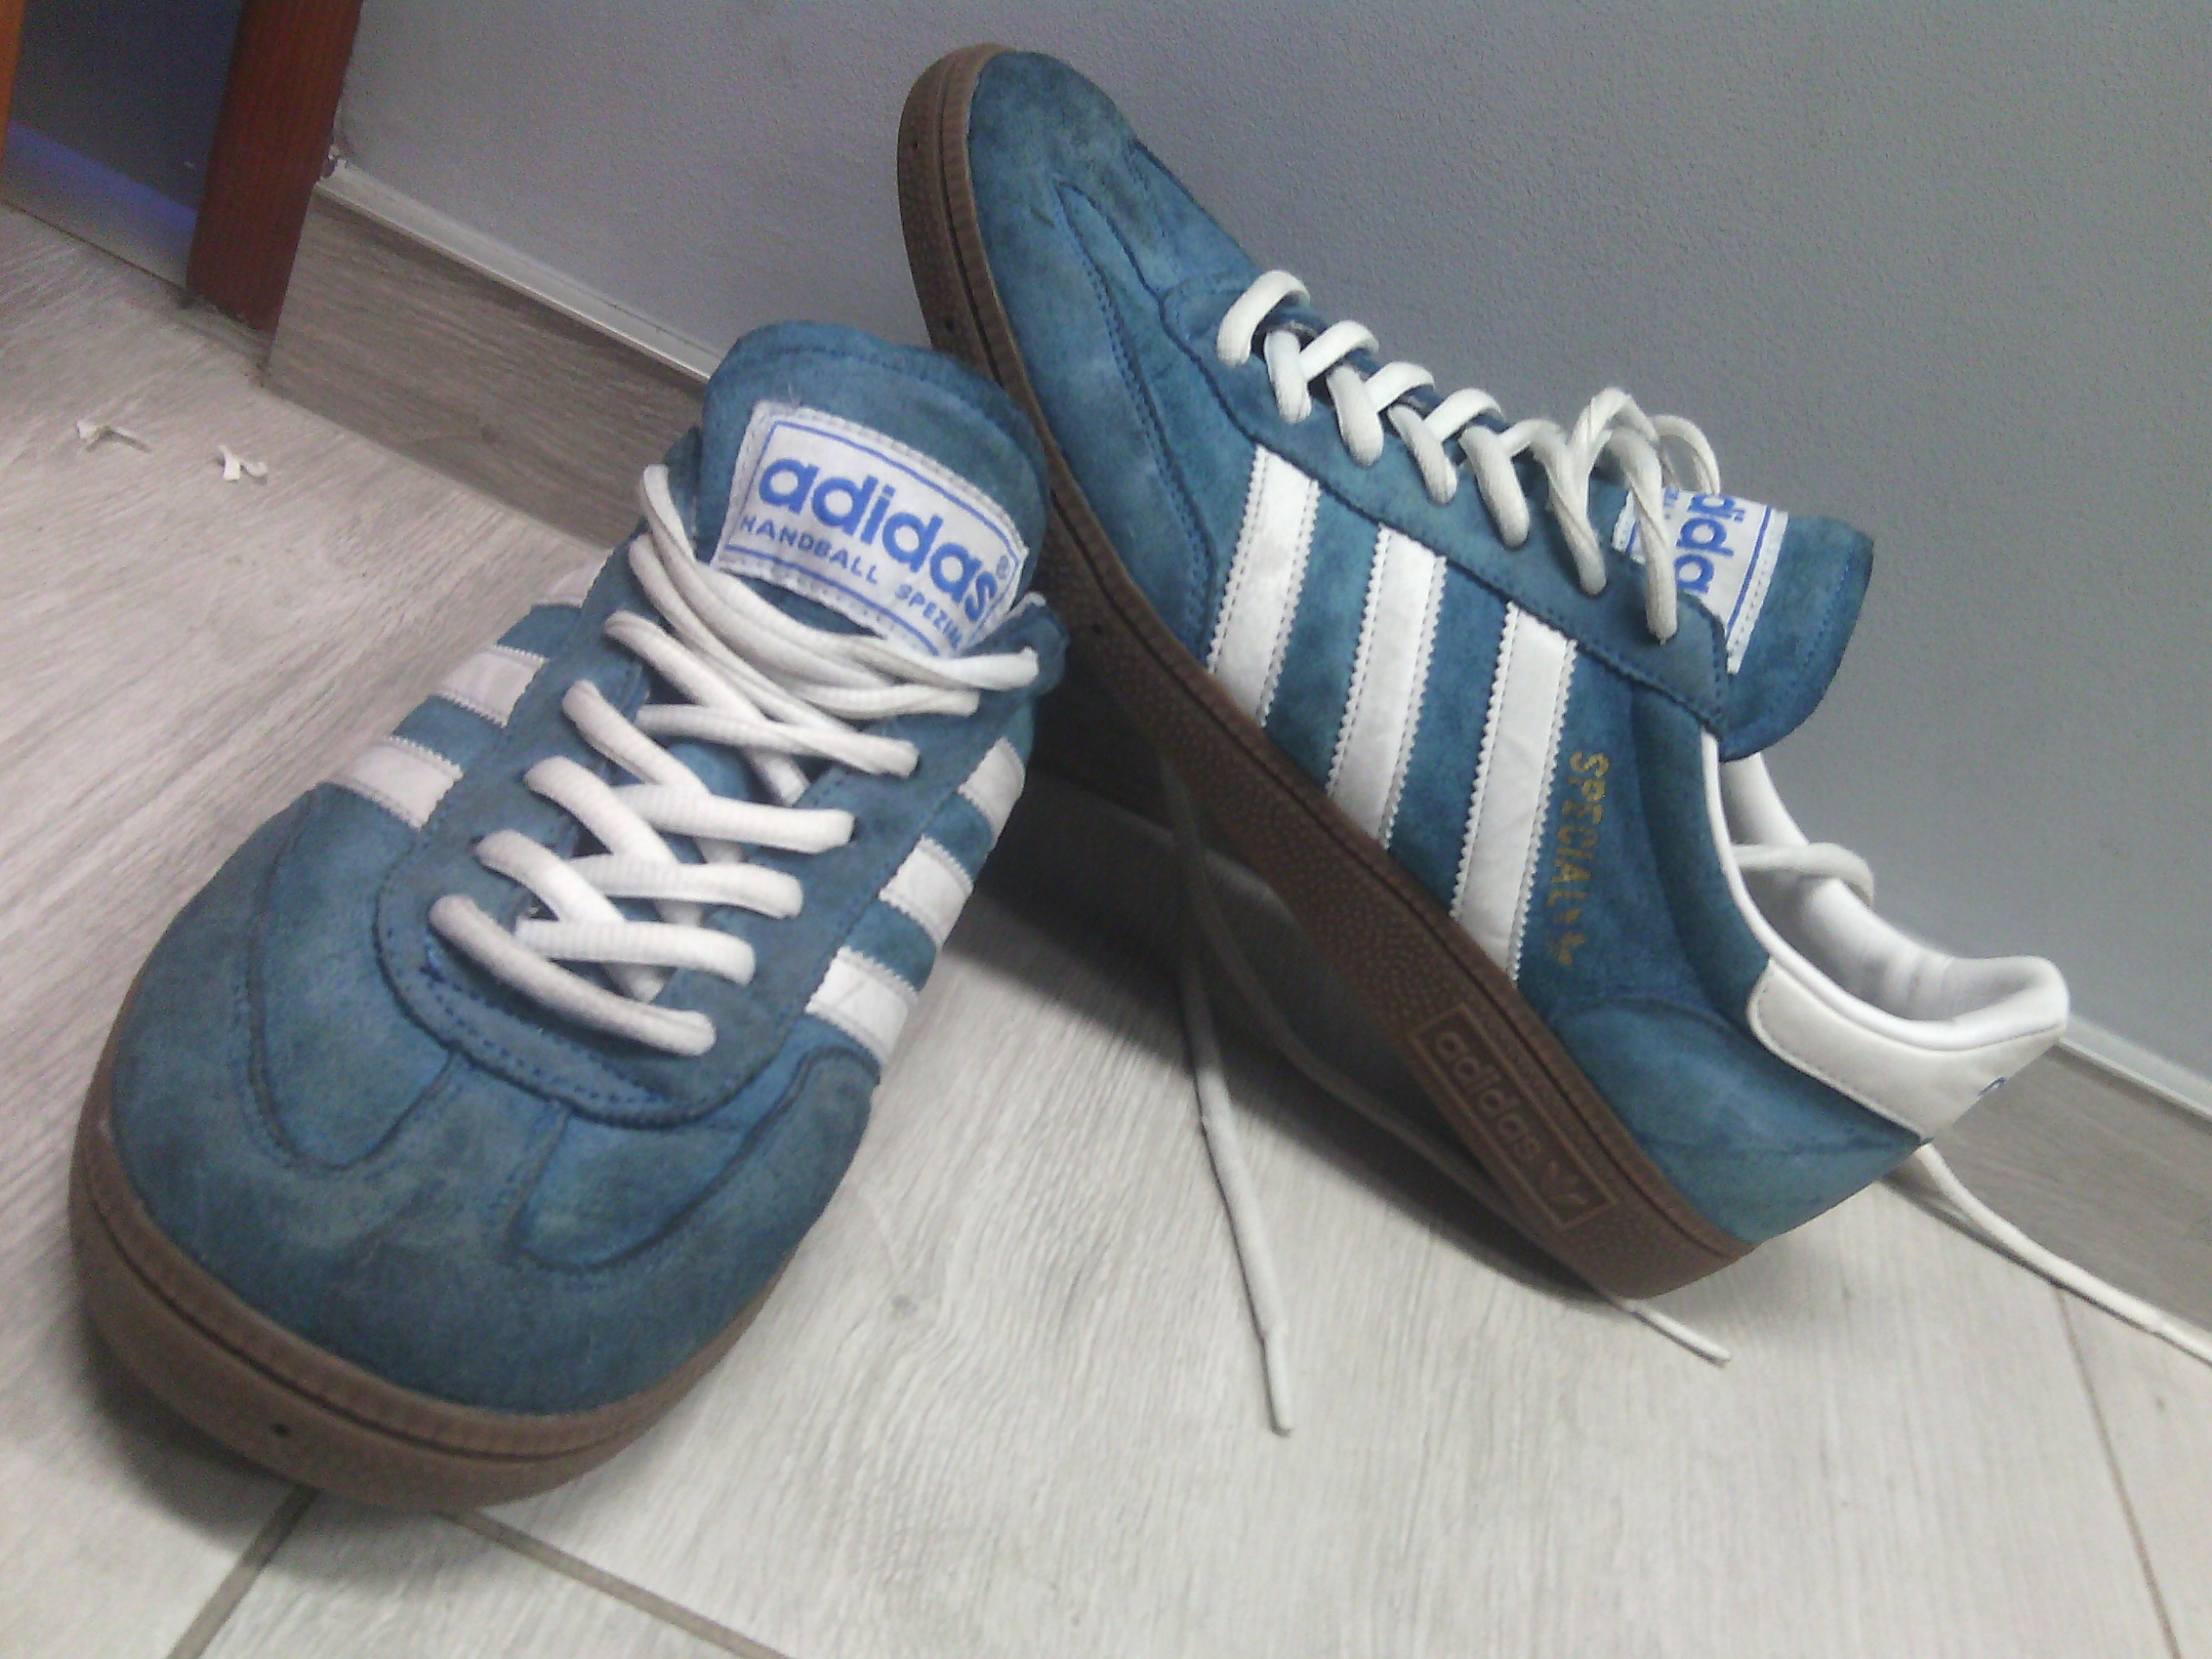 detailed look 03a8f 7315e buty adidas special 41 26cm oldschool classic lato